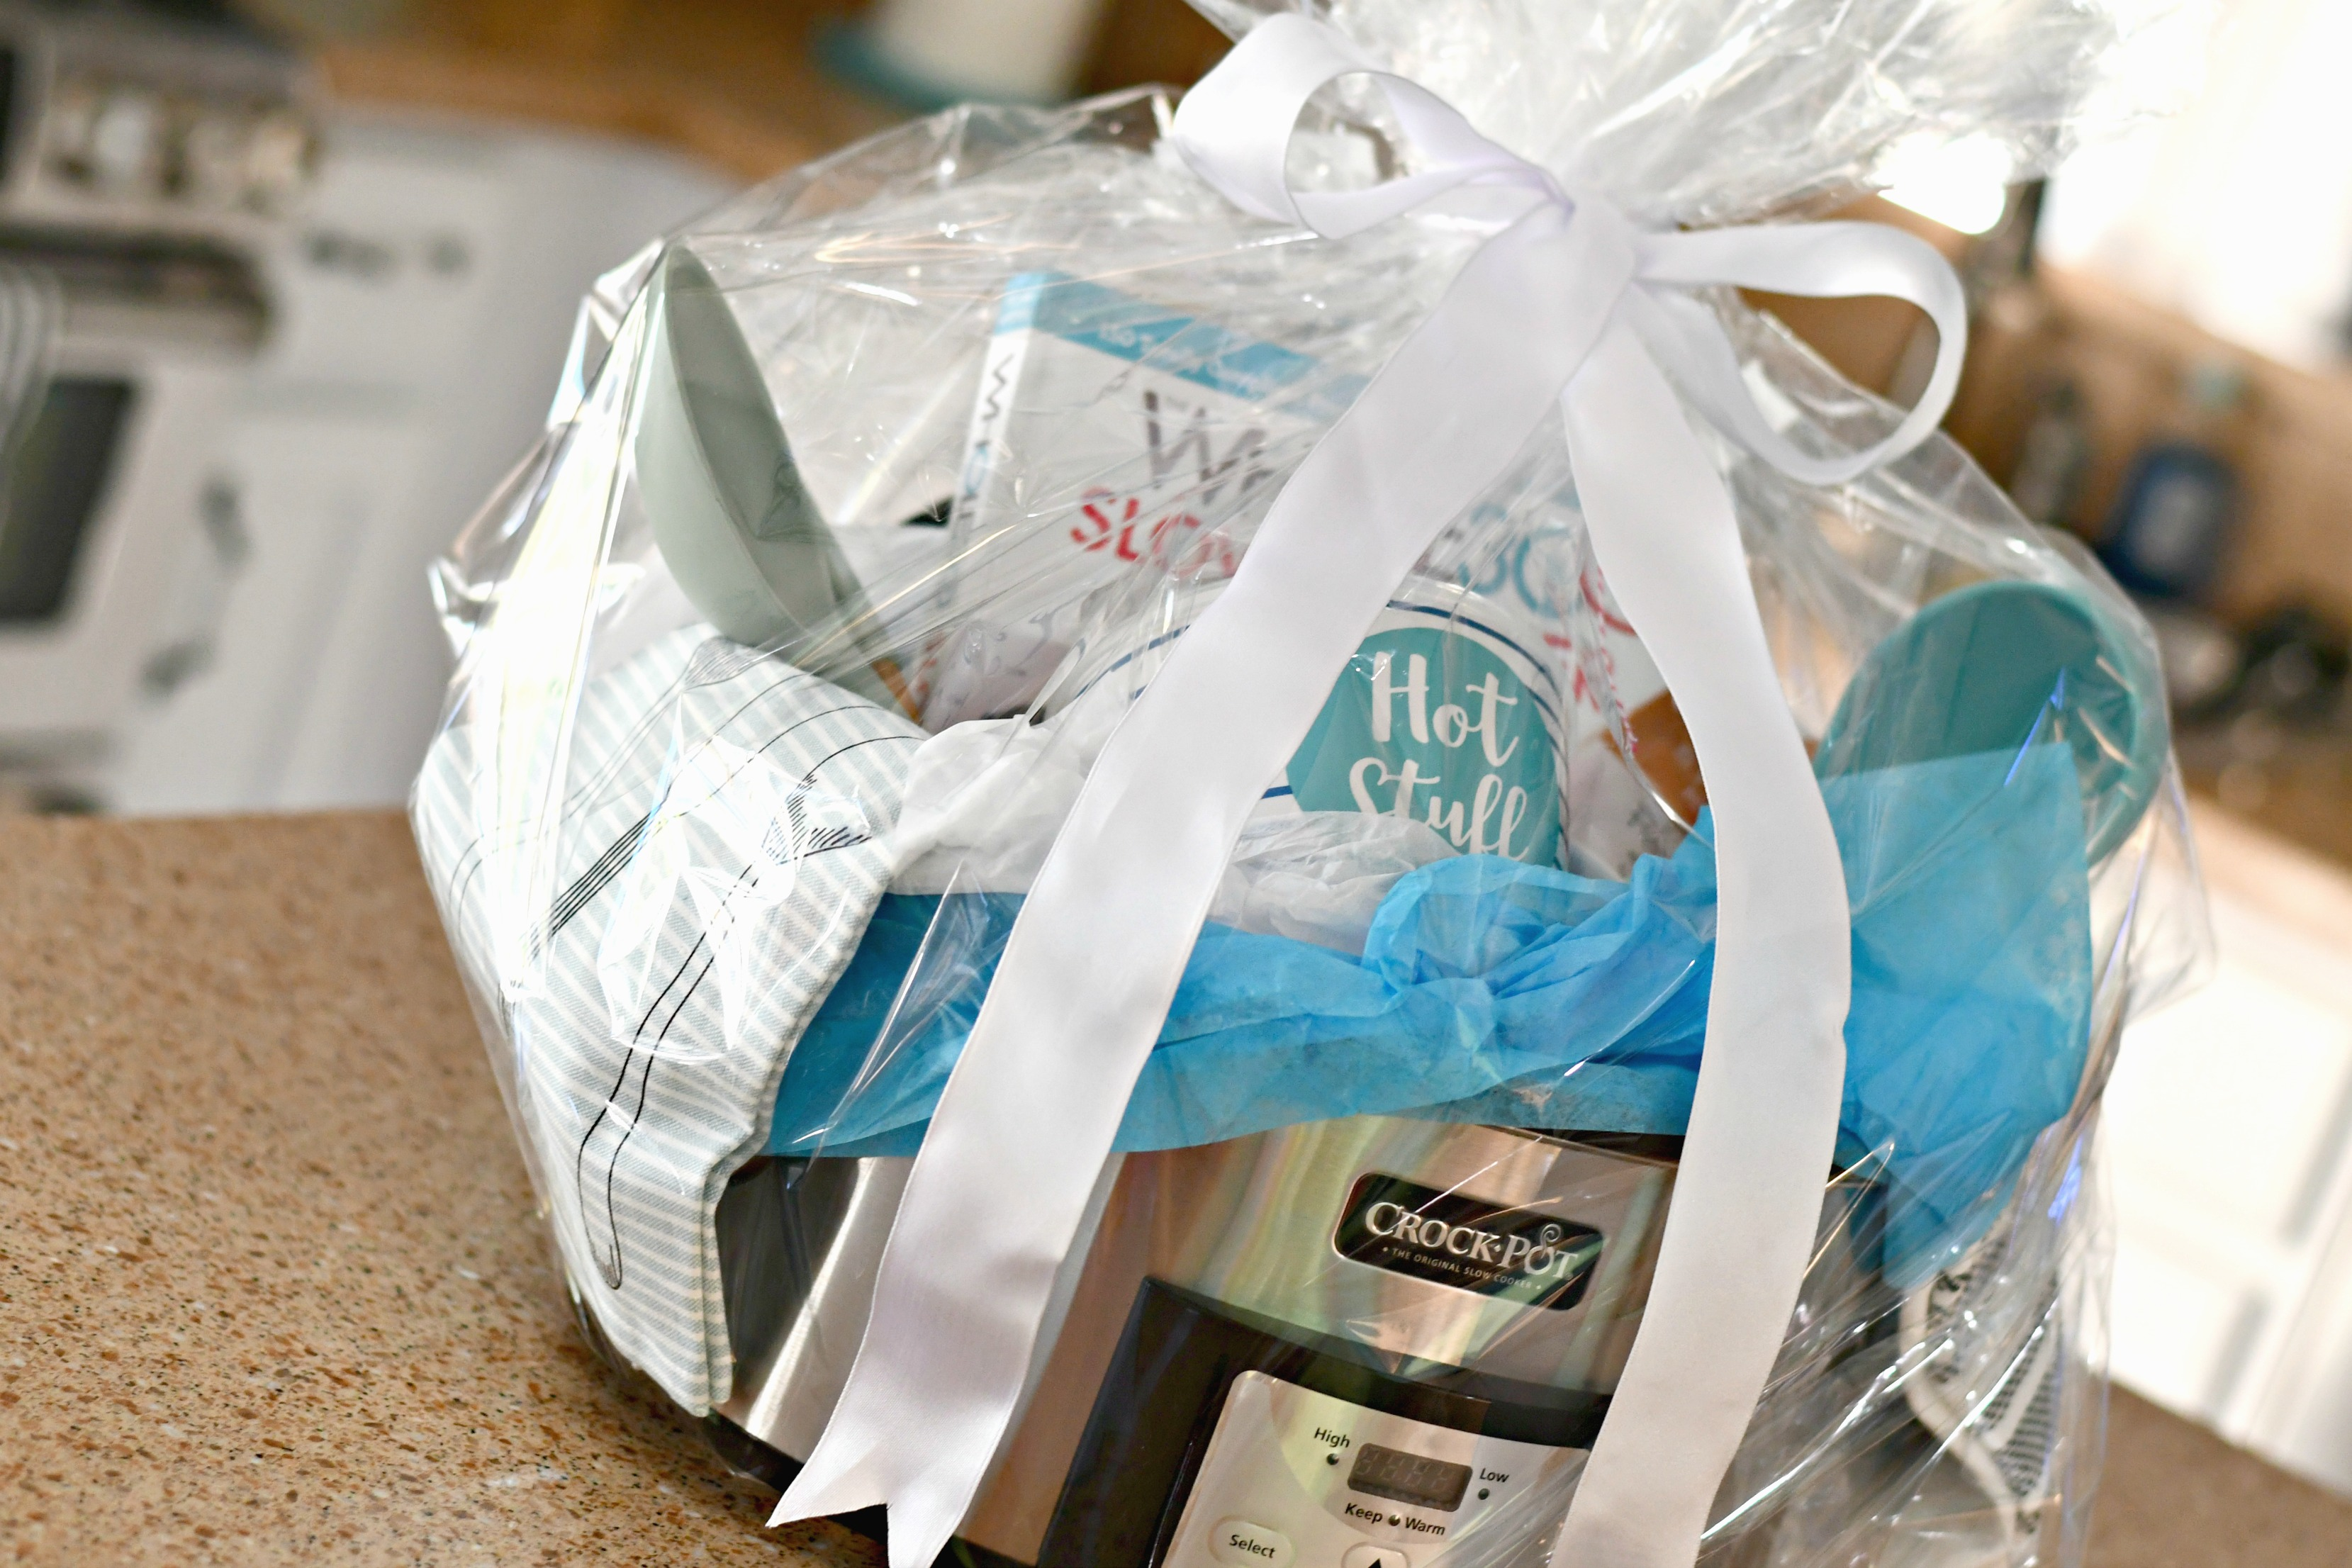 diy gift slow cooker gift basket – All wrapped with clear plastic and a bow